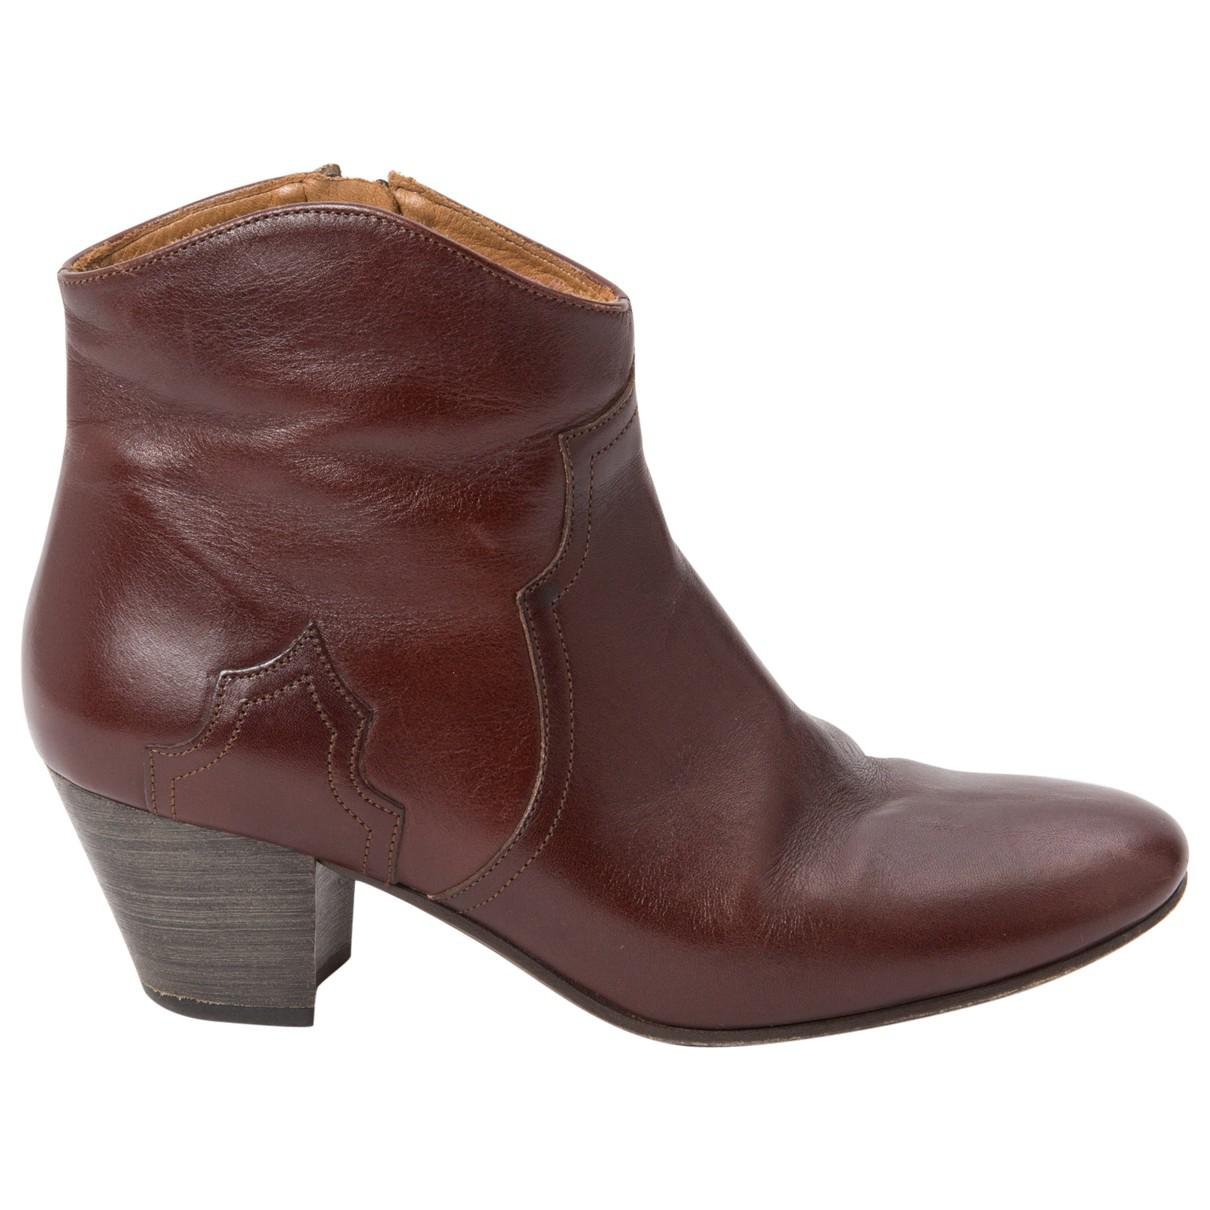 Pre-owned - Dicker leather ankle boots Isabel Marant Really Cheap Discount Original Free Shipping Buy 72Kdq2oVK